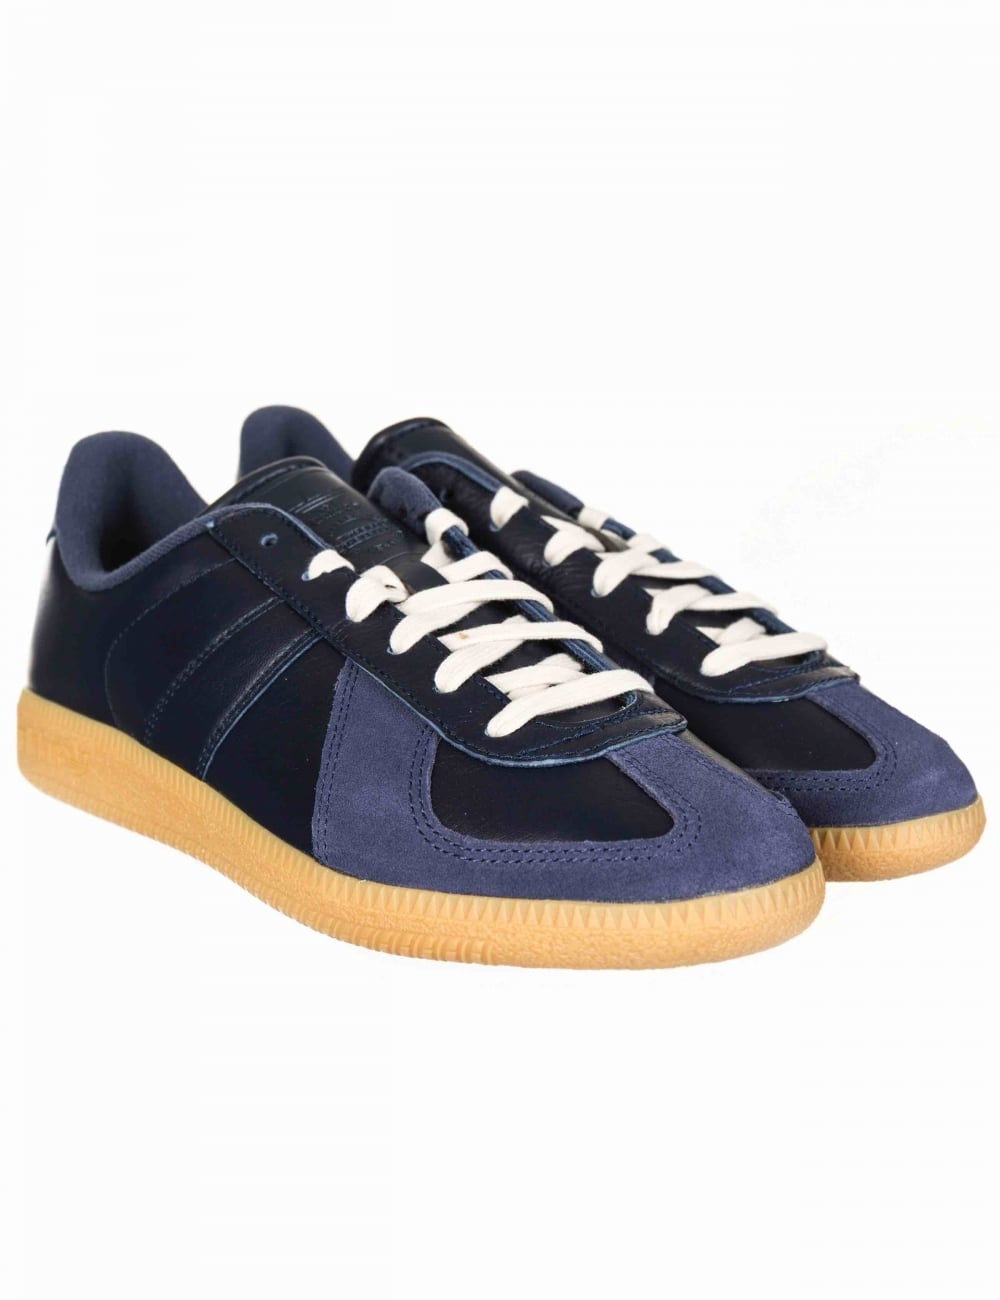 newest f0c59 25b6a BW Army Shoes - Collegiate Navy